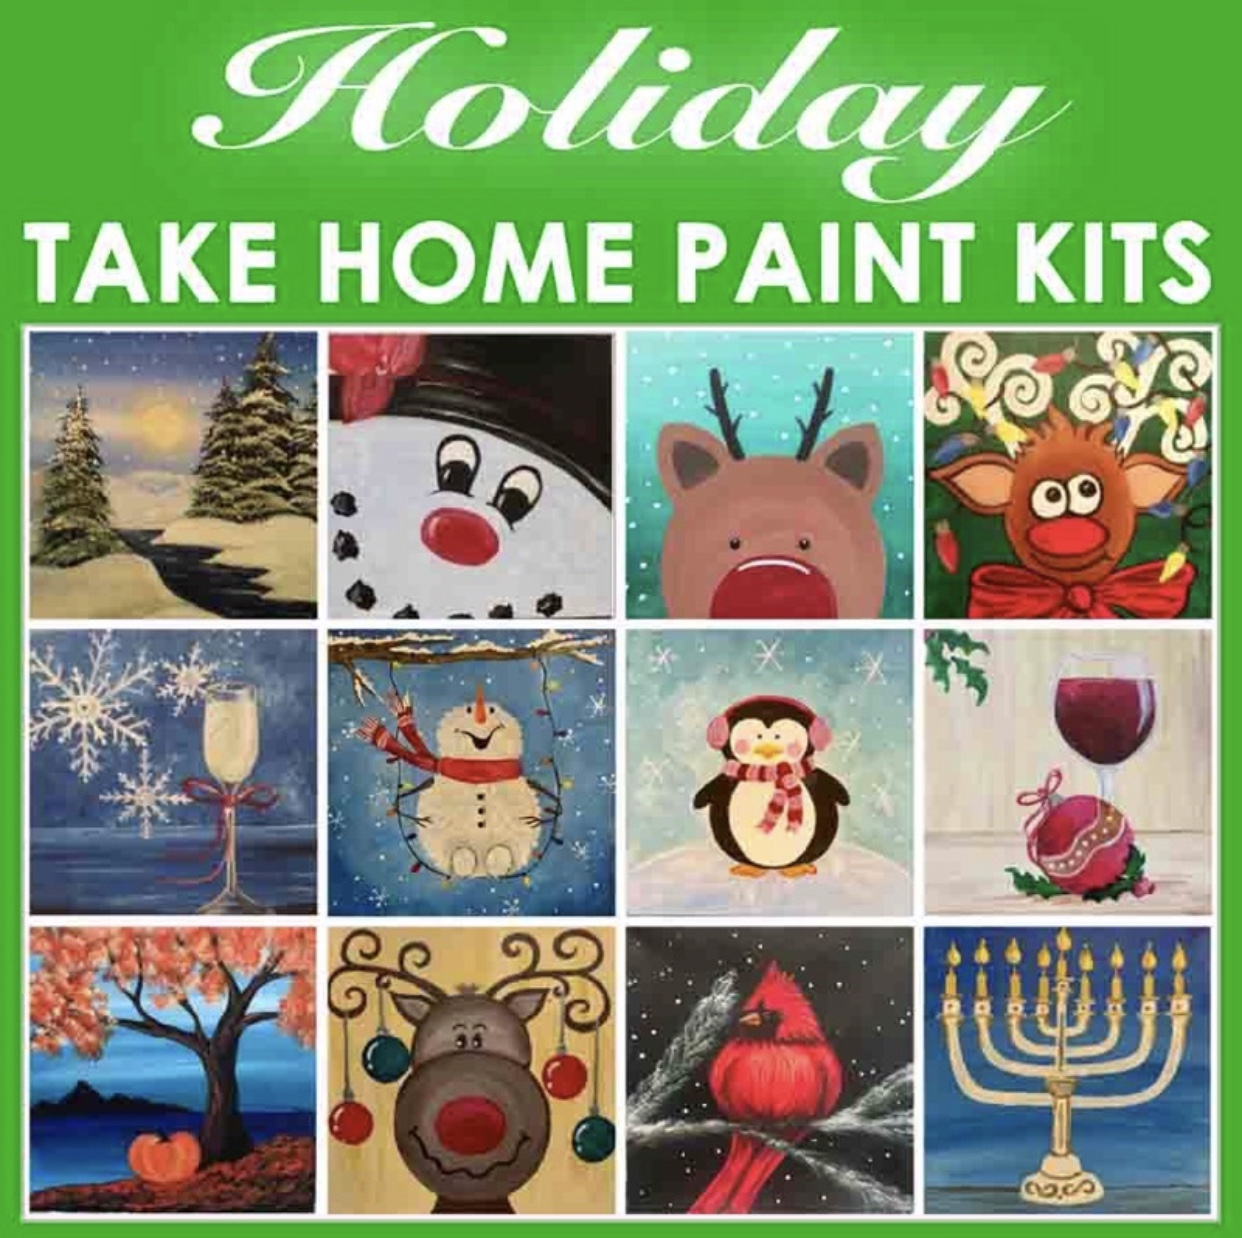 🌟 THANKSGIVING SPECIAL OFFER !!! BUY 4 TAKE HOME PAINT KITS / GET 1 FREE TAKE HOME PAINT KIT!!! USE CODE AT CHECKOUT:   B4GO🌟 (Mini) Family Fun